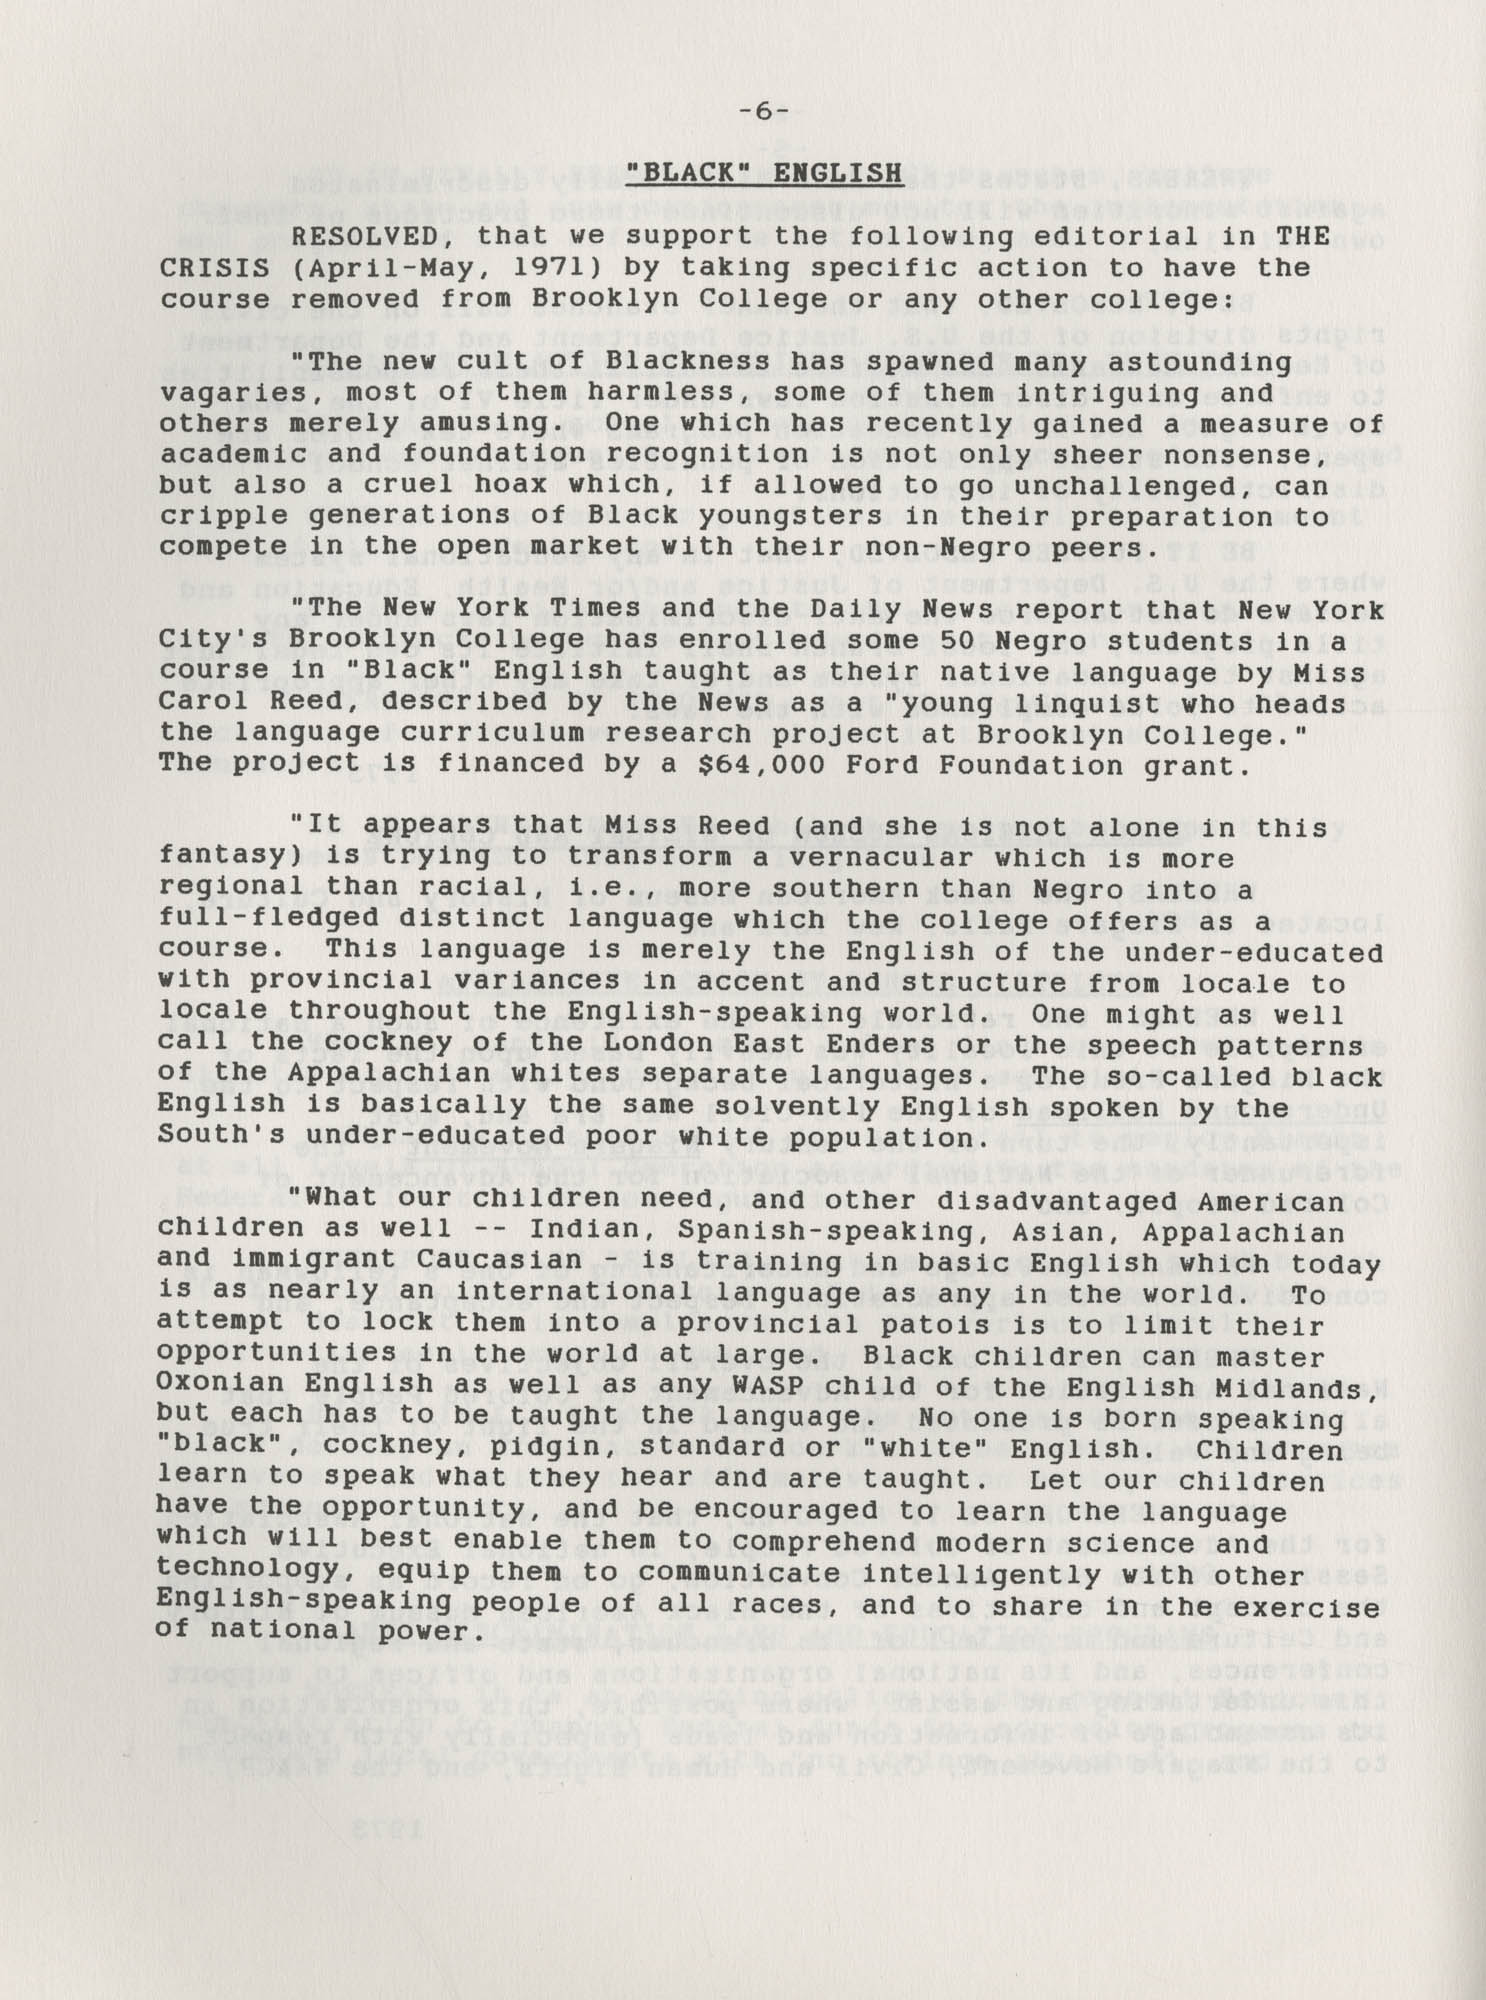 NAACP Resolutions on Education, 1970-1989, Index to Education Resolutions, Page 6